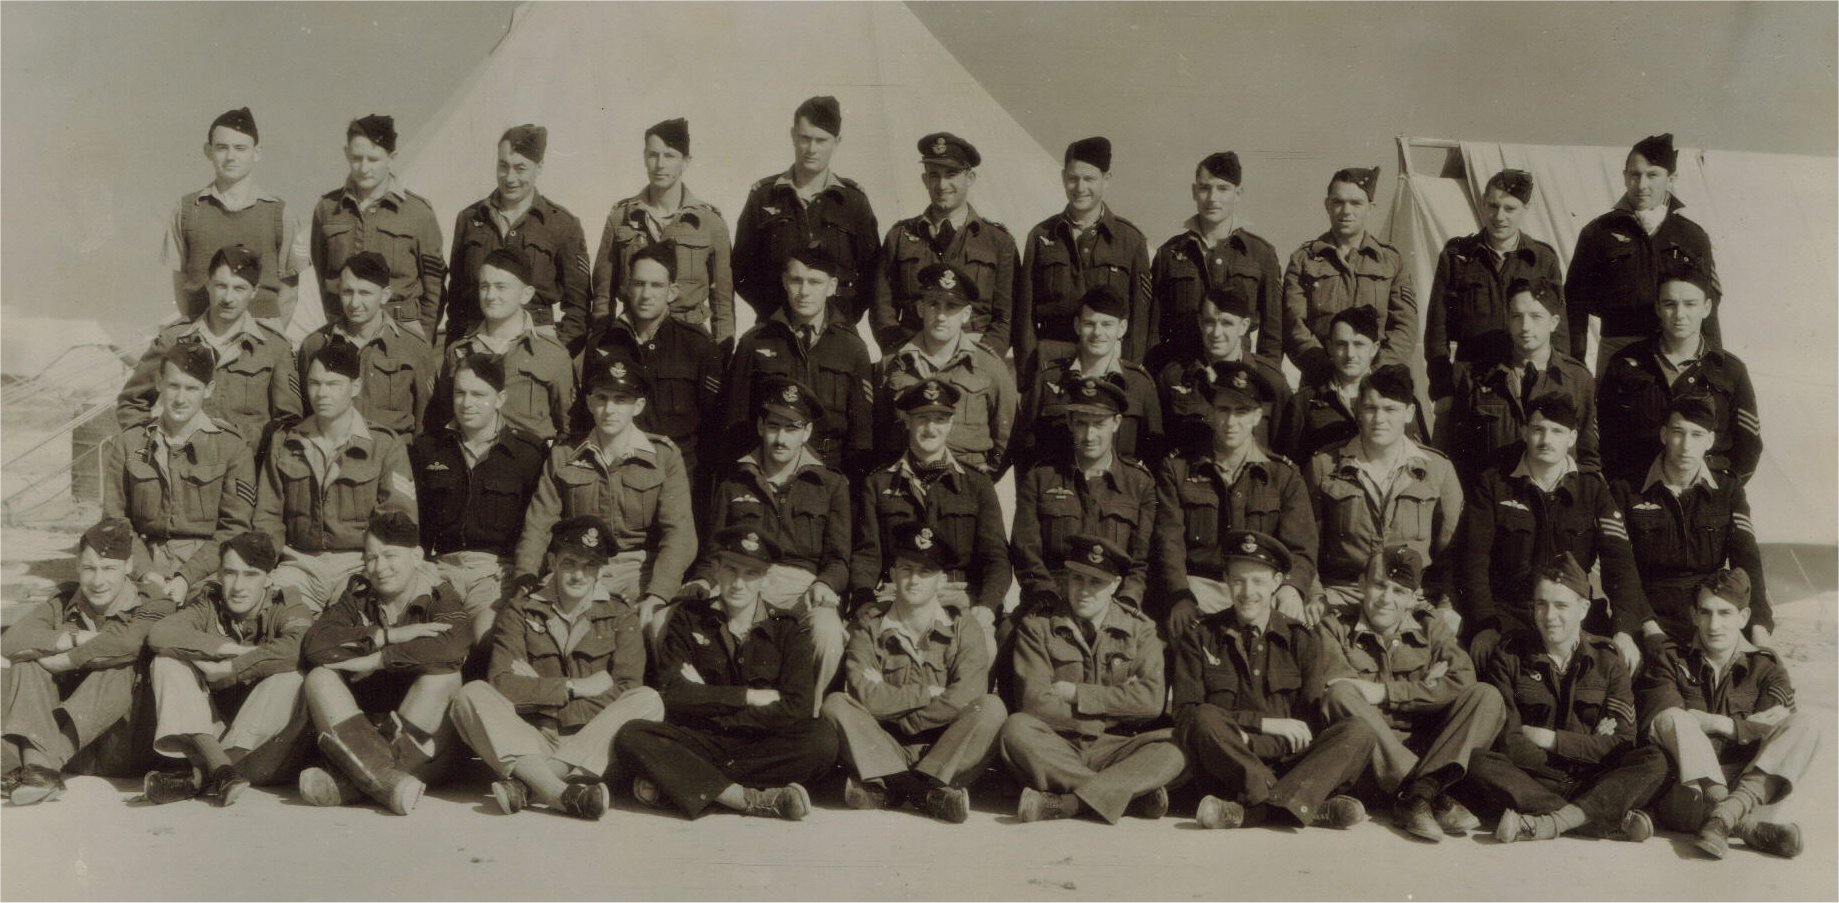 459 Squadron MEF 1942-43 B Flight Aircrew